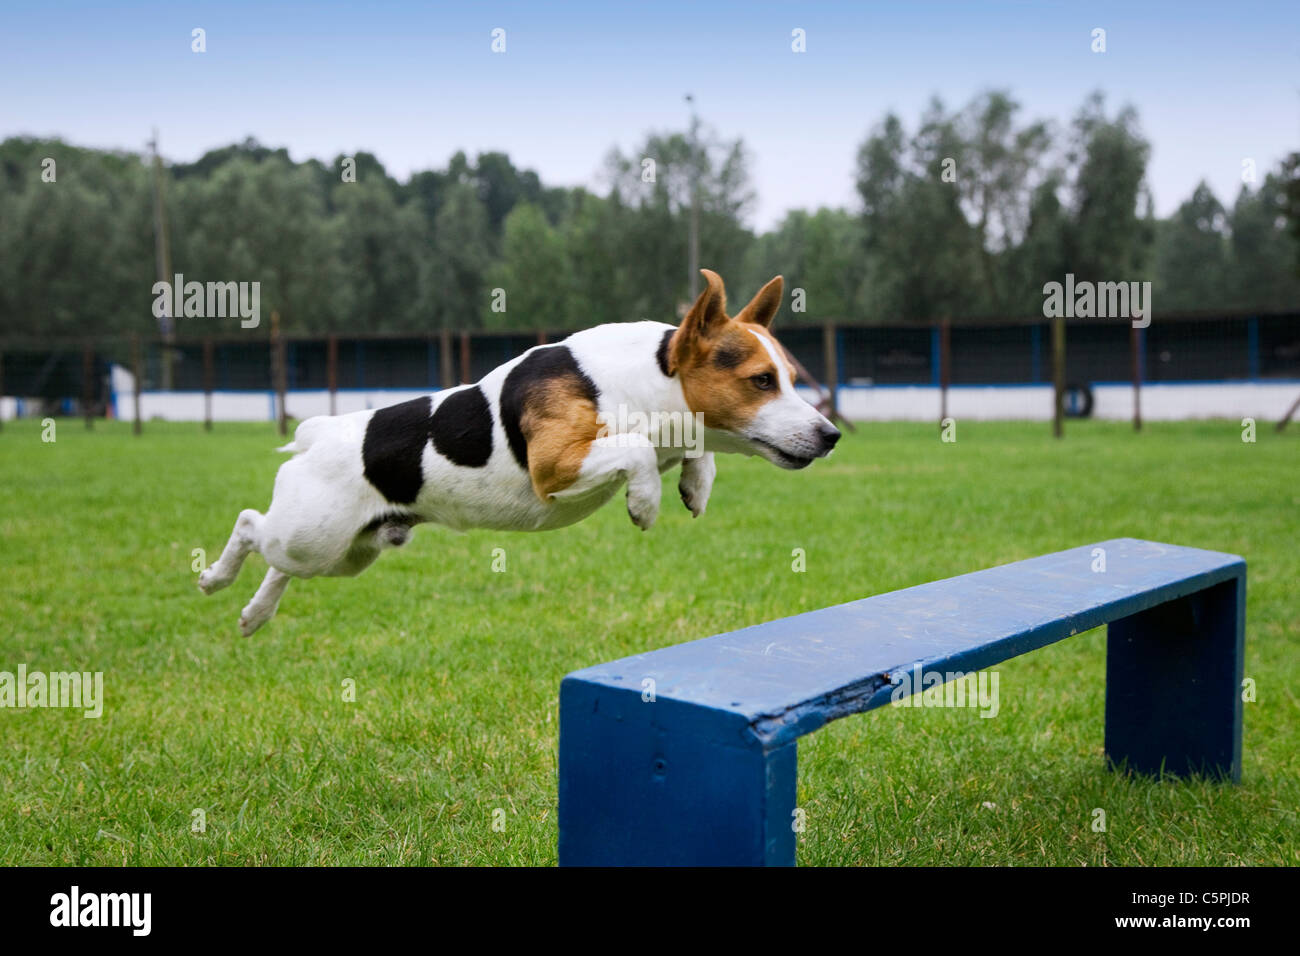 Smooth coated Jack Russell terrier (Canis lupus familiaris) running and jumping at obstacle course in dog training - Stock Image